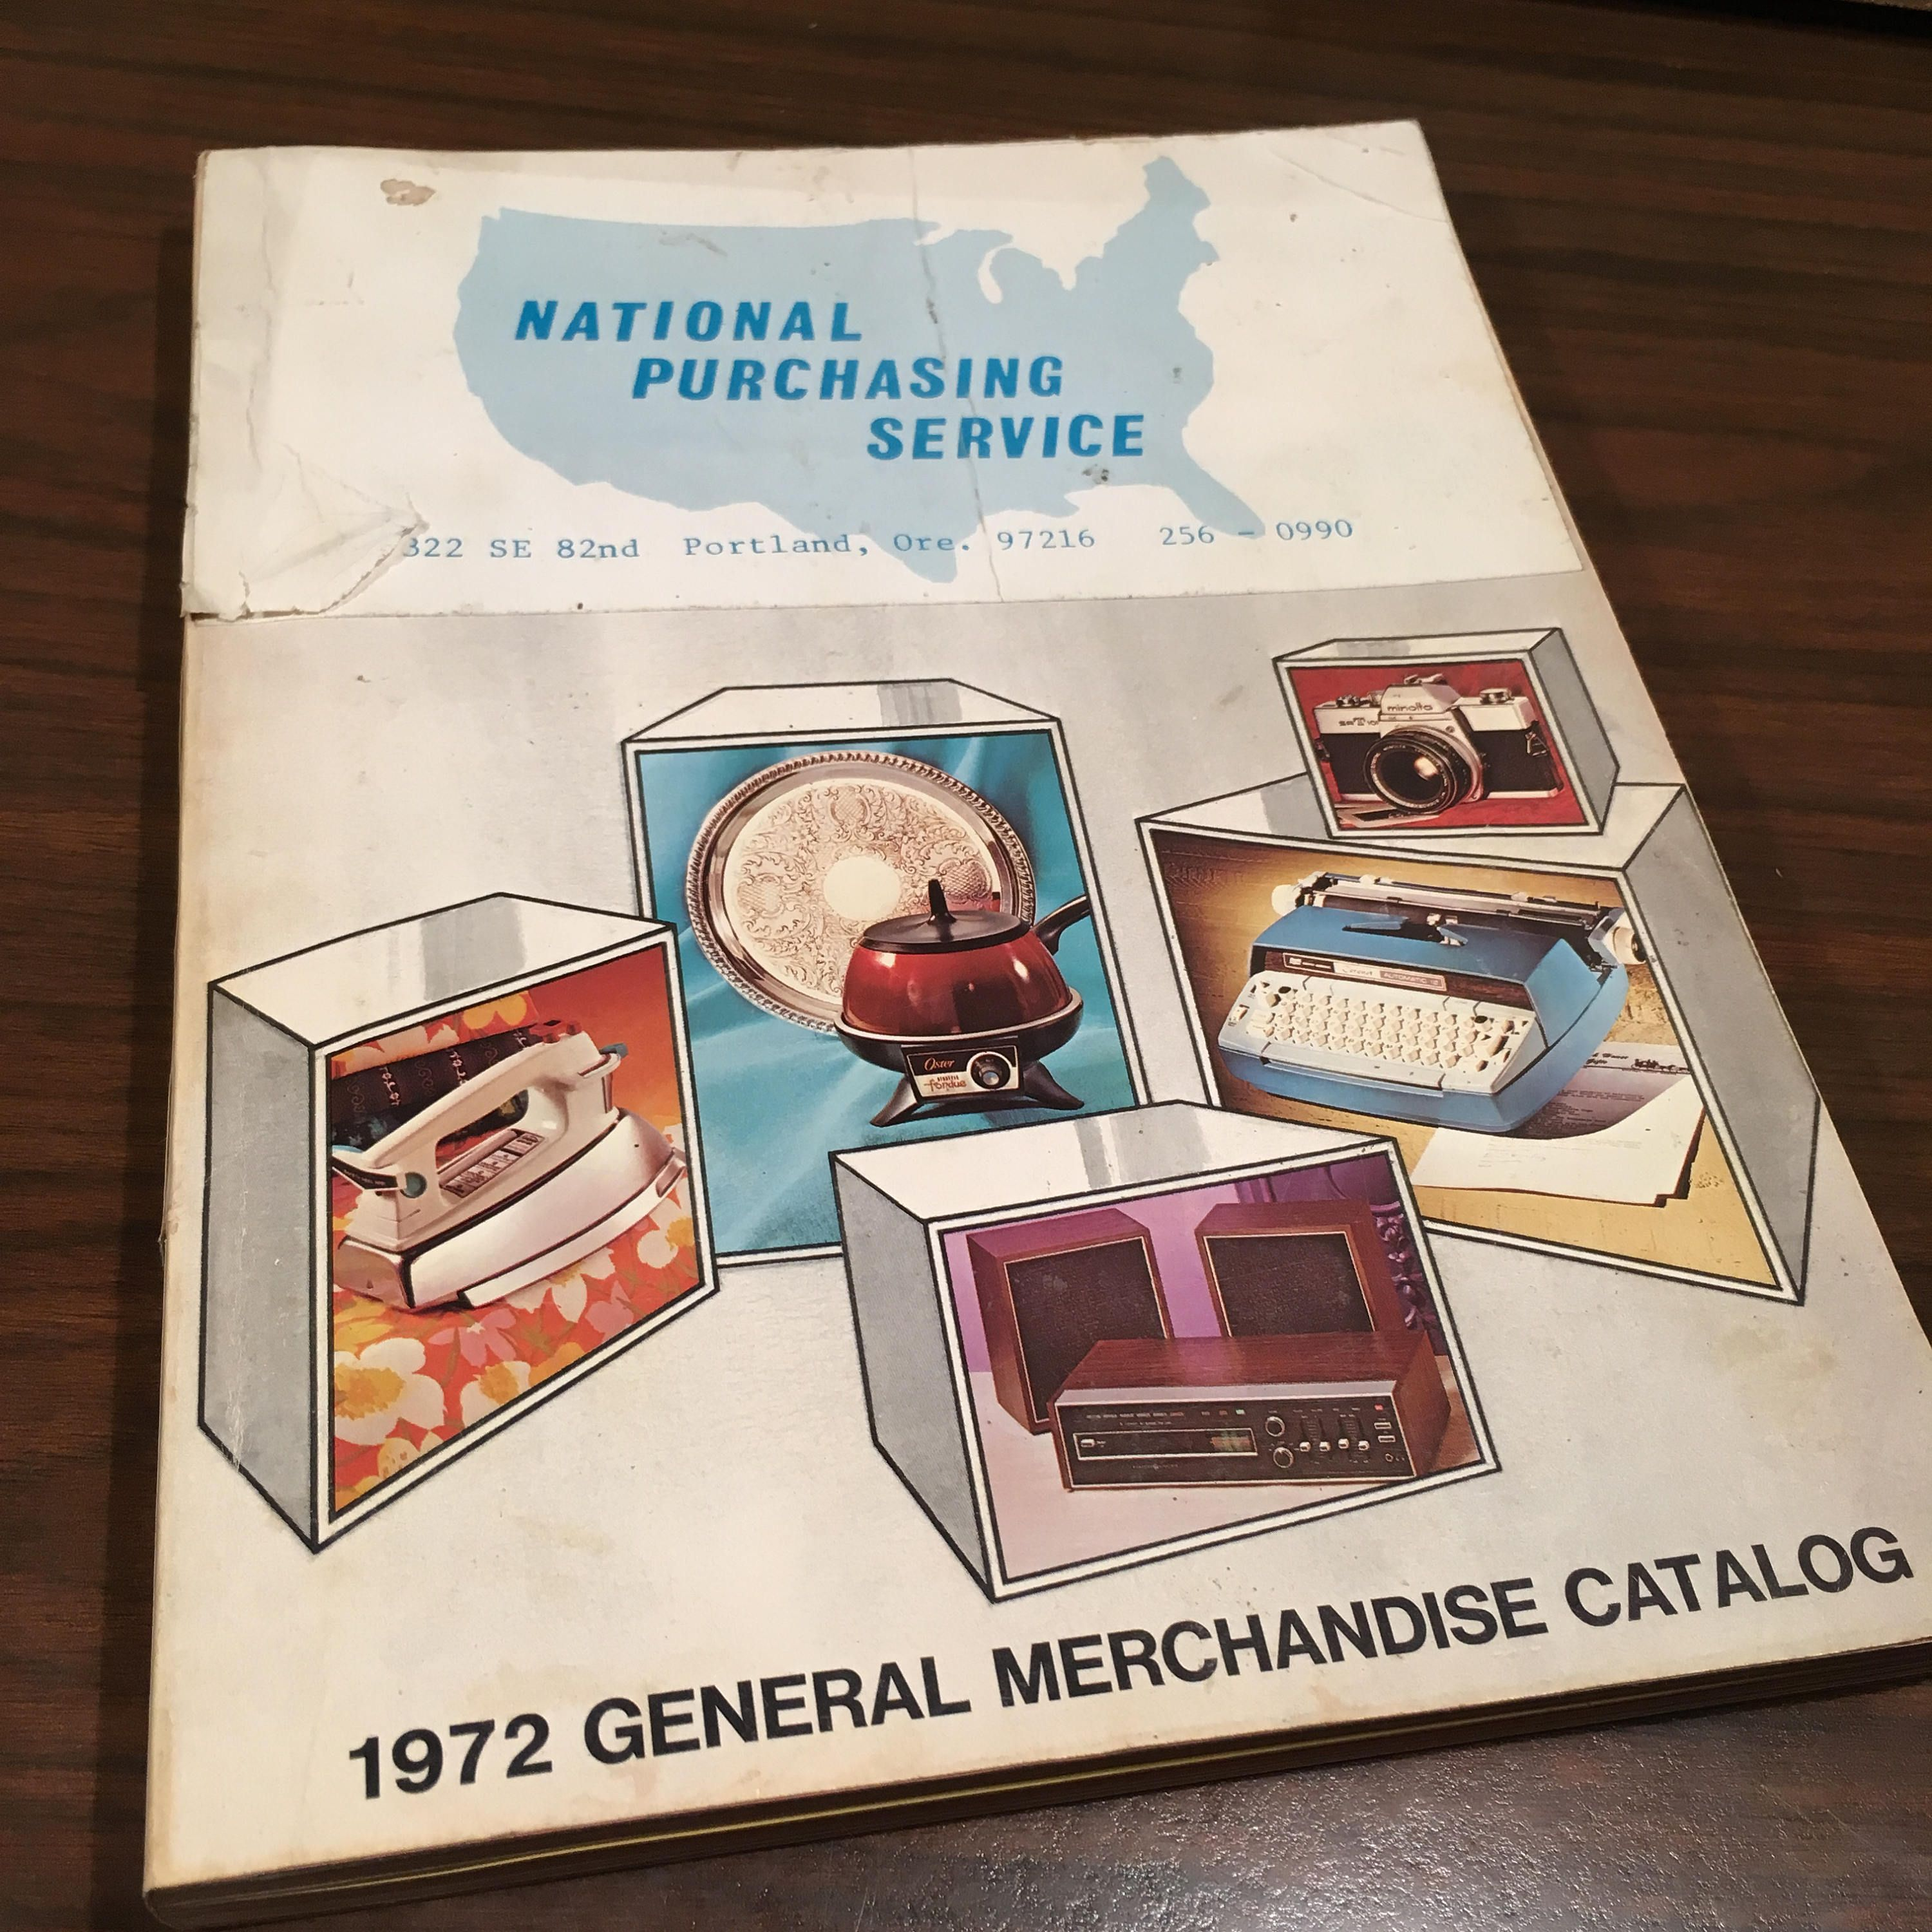 National Purchasing Service 1972 General Merchandise